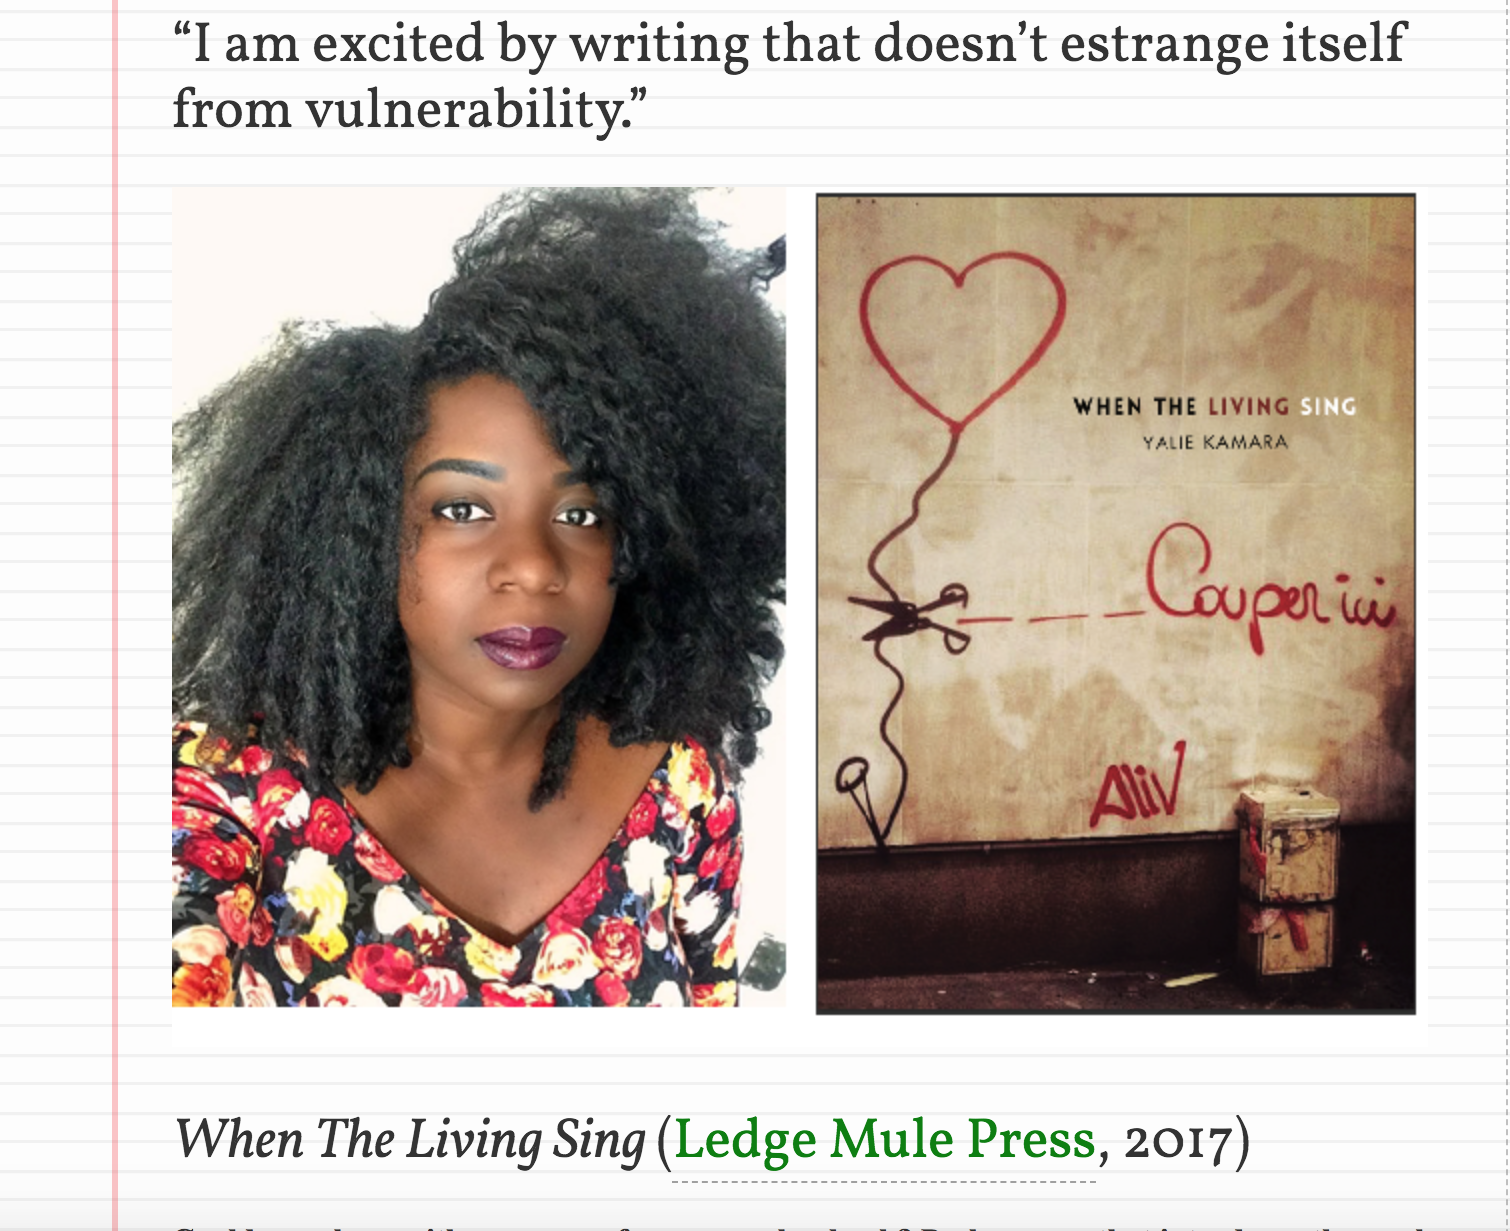 - Interview with Yalie Kamara, author of When The Living Sing, Speaking of Marvels, July 14, 2017